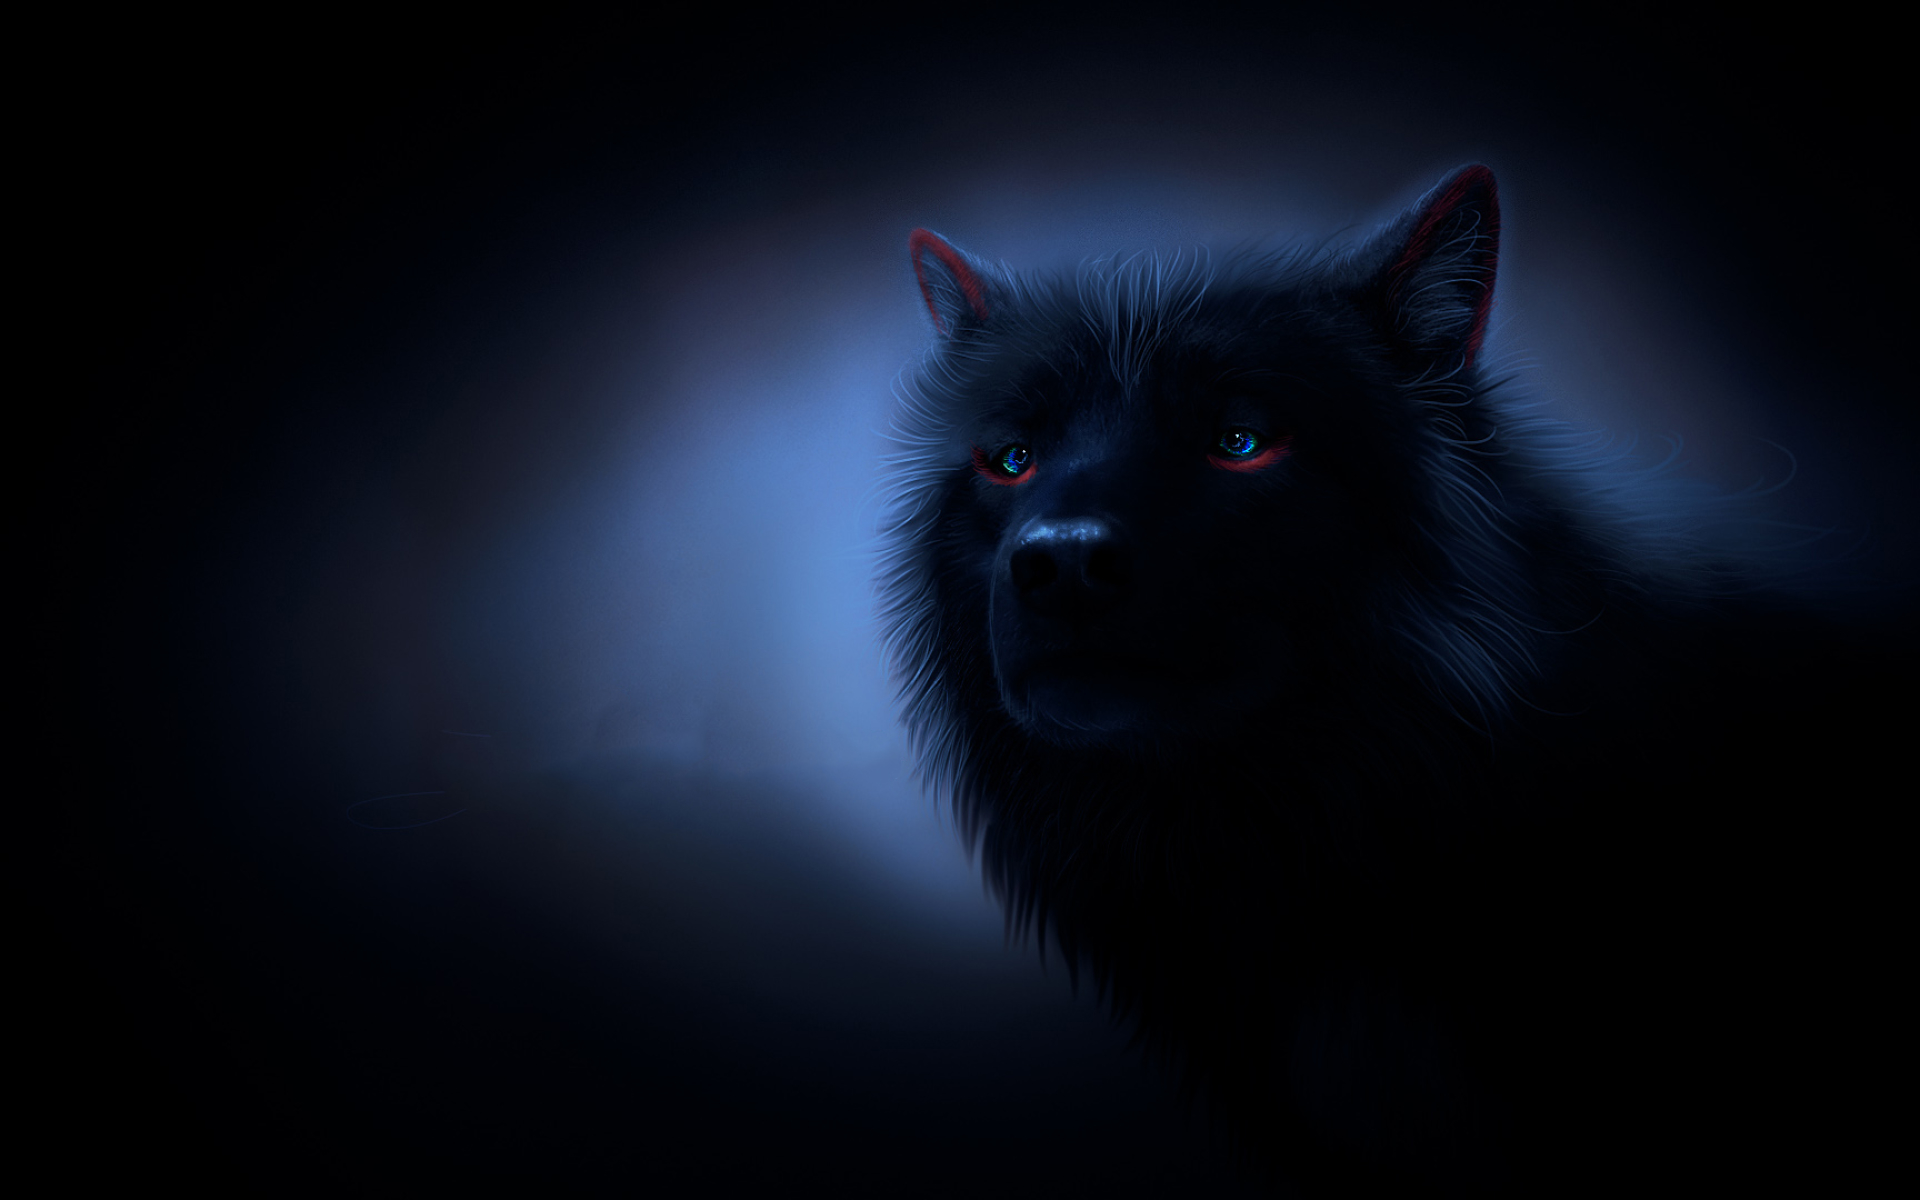 black wolf, darkness, wolf with blue eyes, fog, wildlife, fantastic wolf